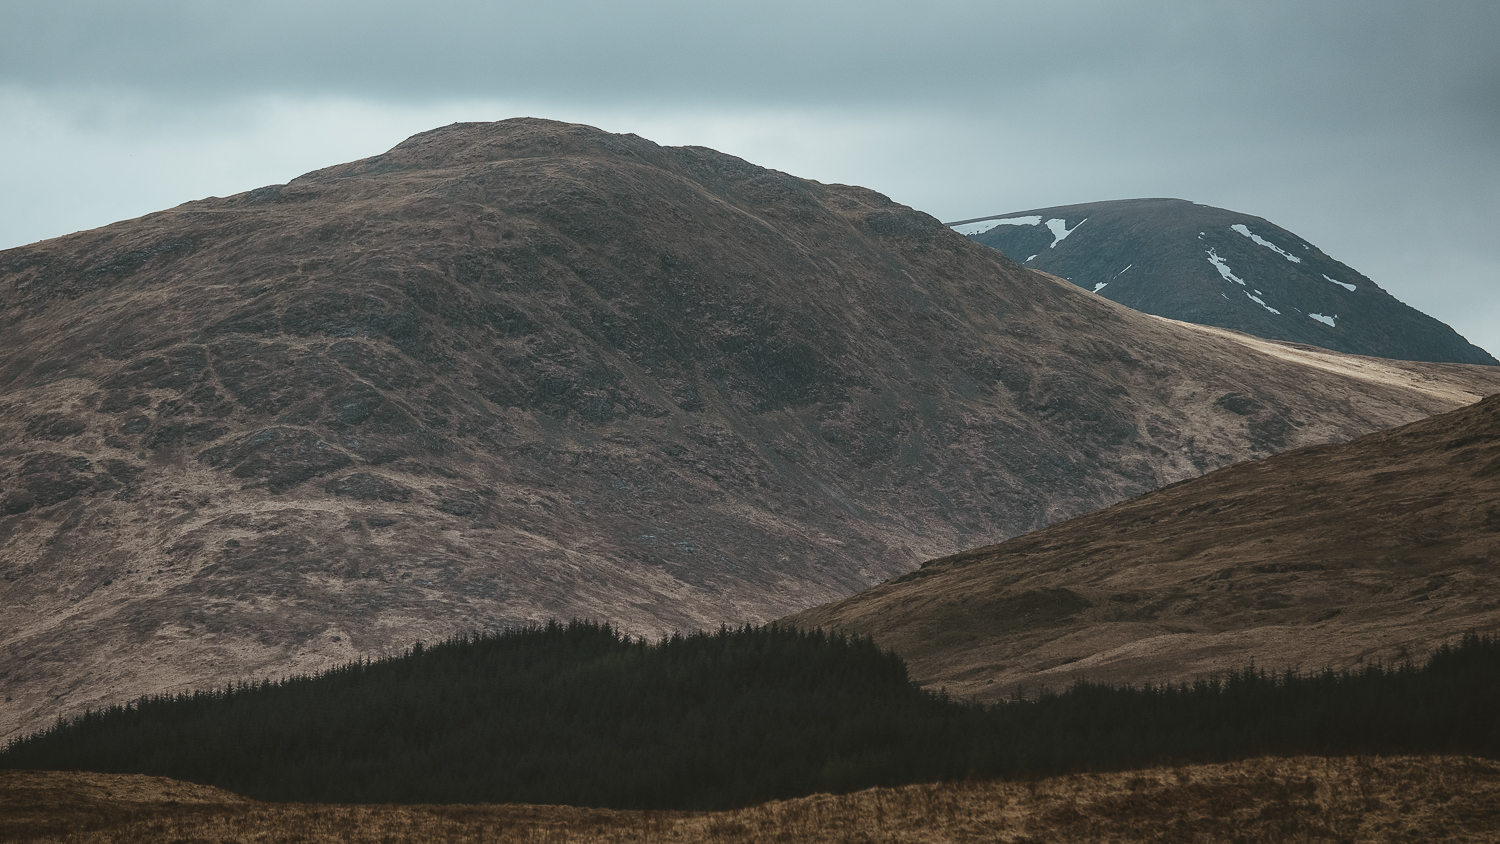 0008-workshop-glencoe-skye-20180507134942.jpg